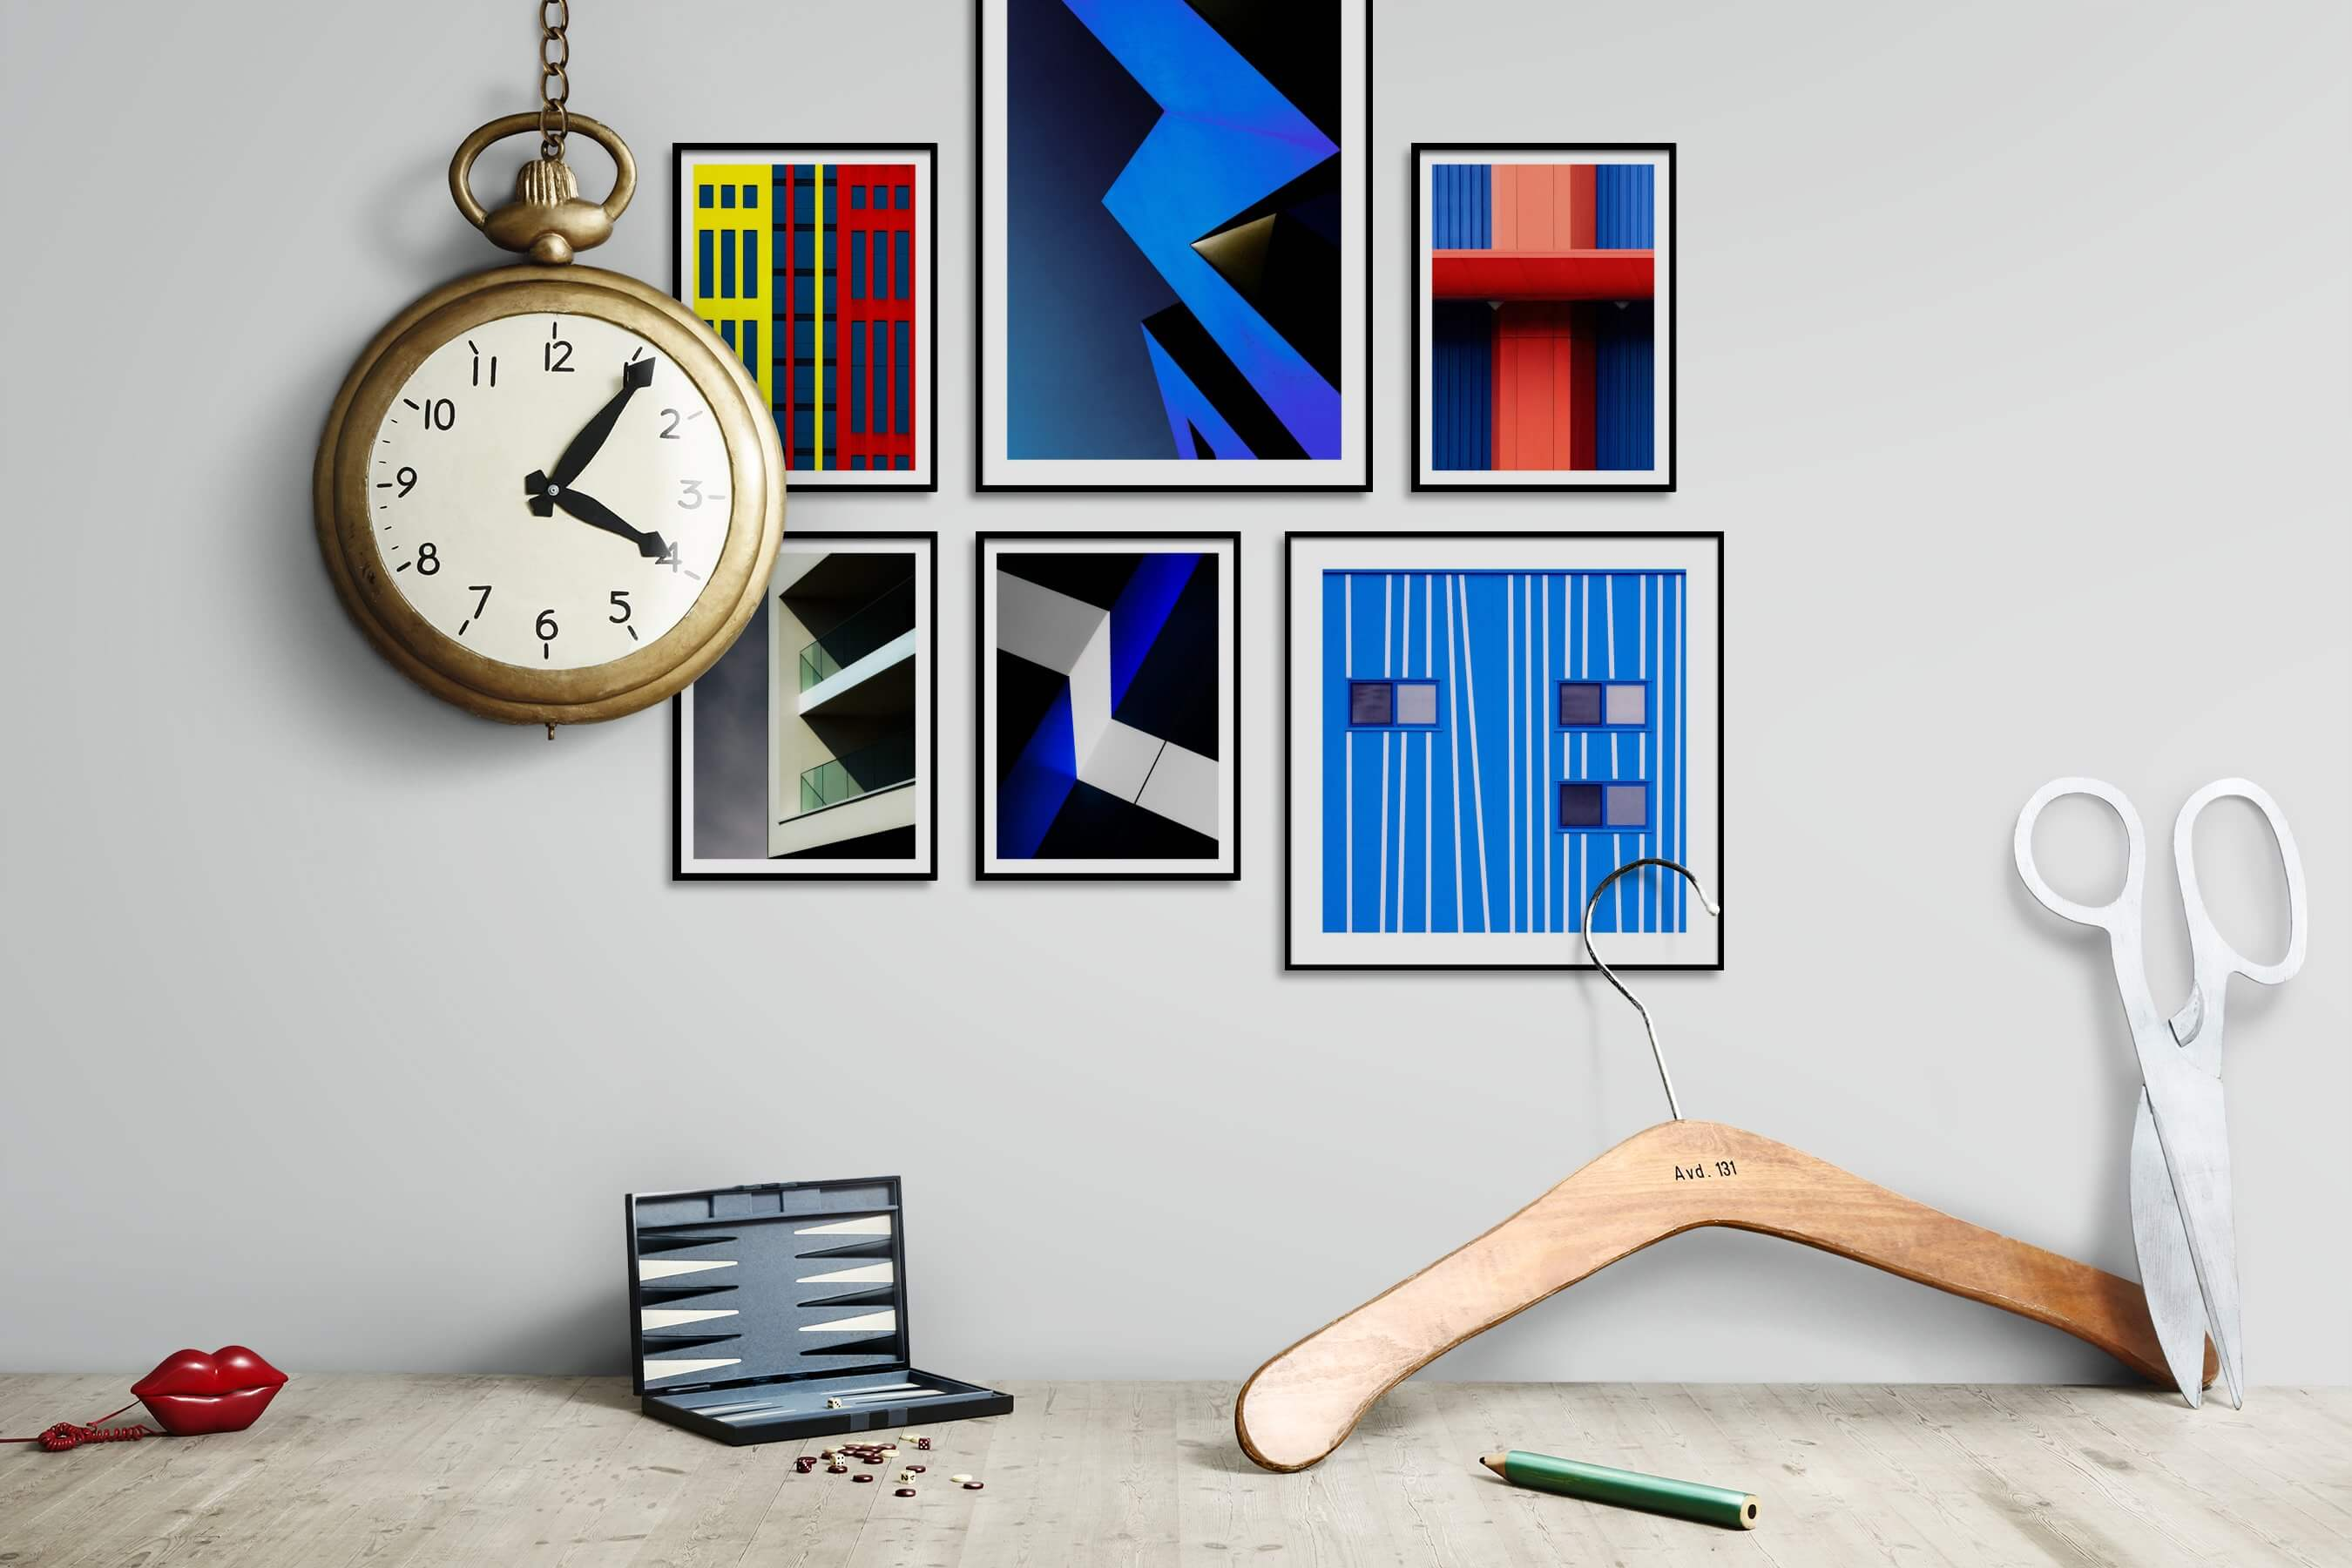 Gallery wall idea with six framed pictures arranged on a wall depicting Colorful, For the Maximalist, For the Moderate, City Life, and For the Minimalist